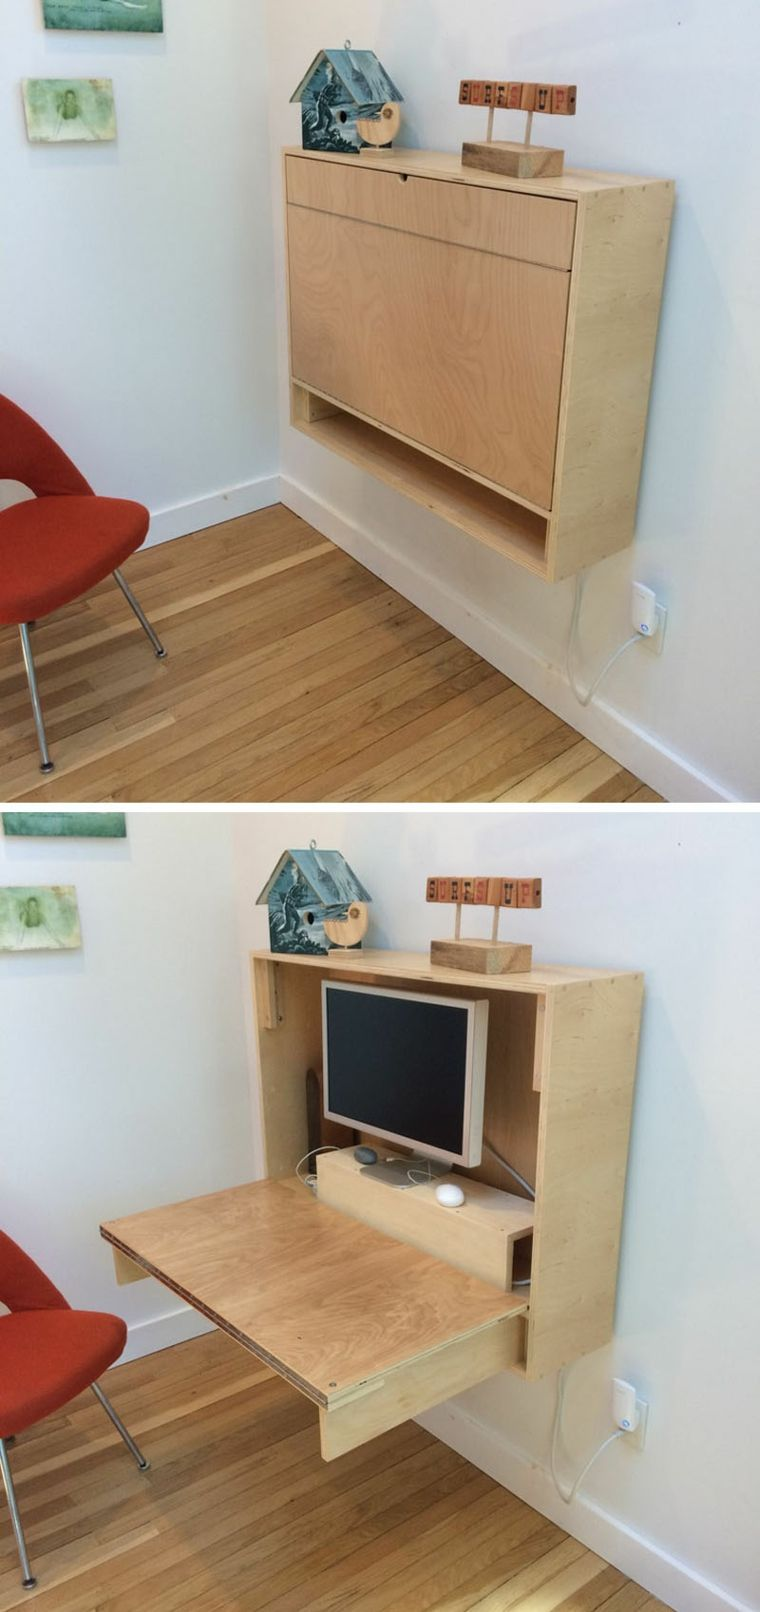 Wall Mounted Desks For Small Spaces Mesa De Escritorio Flotante Ideas Estupendas Para Una Oficina En